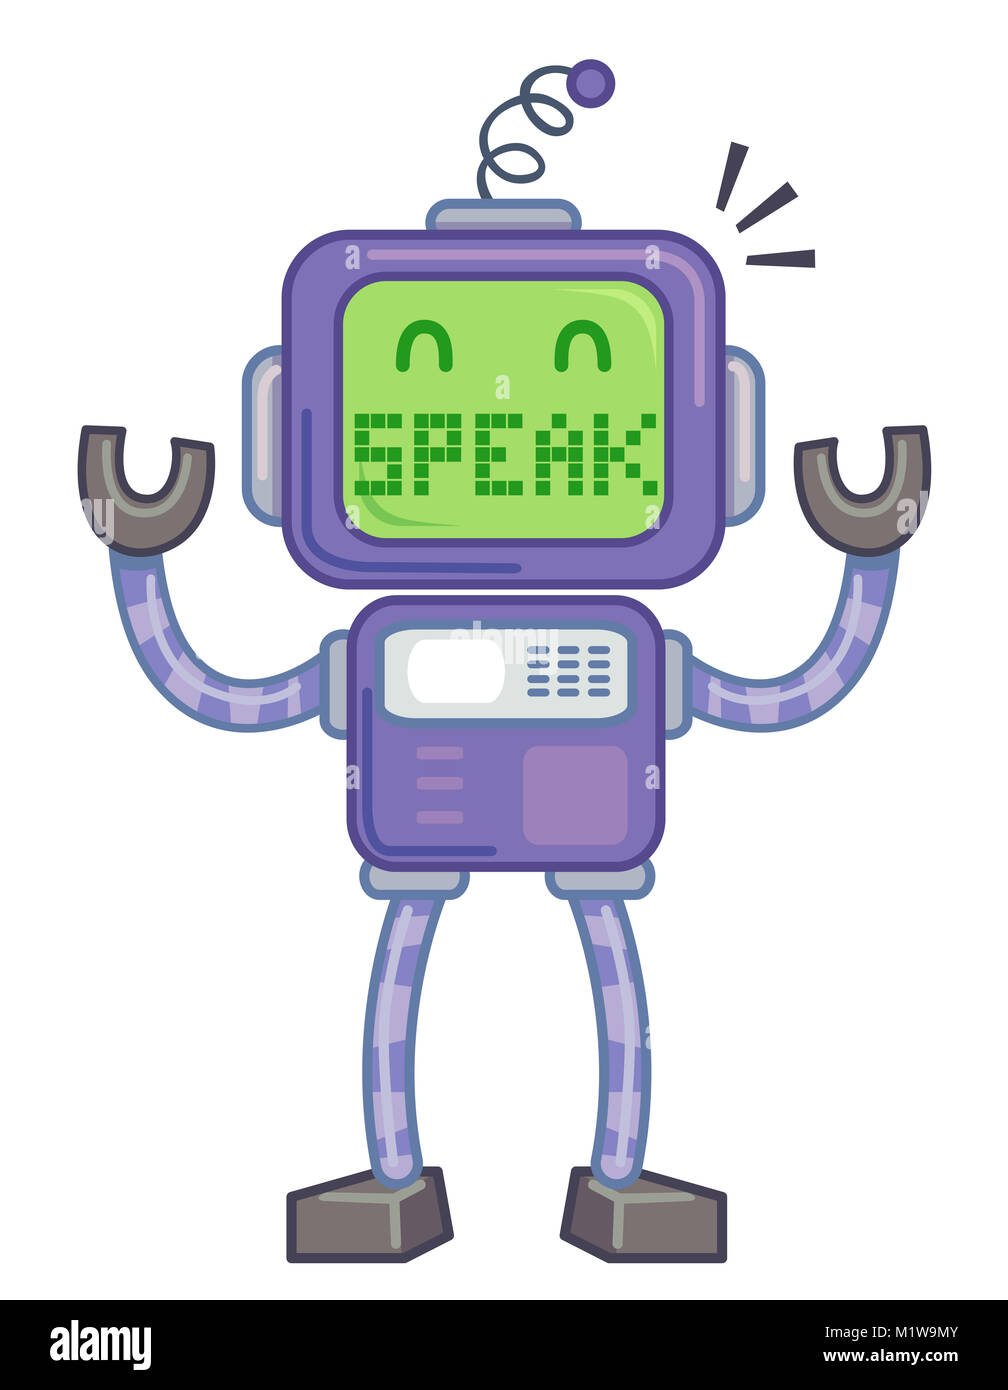 Concept Illustration Featuring a Robot with the Word Speak Written on its Face - Stock Image